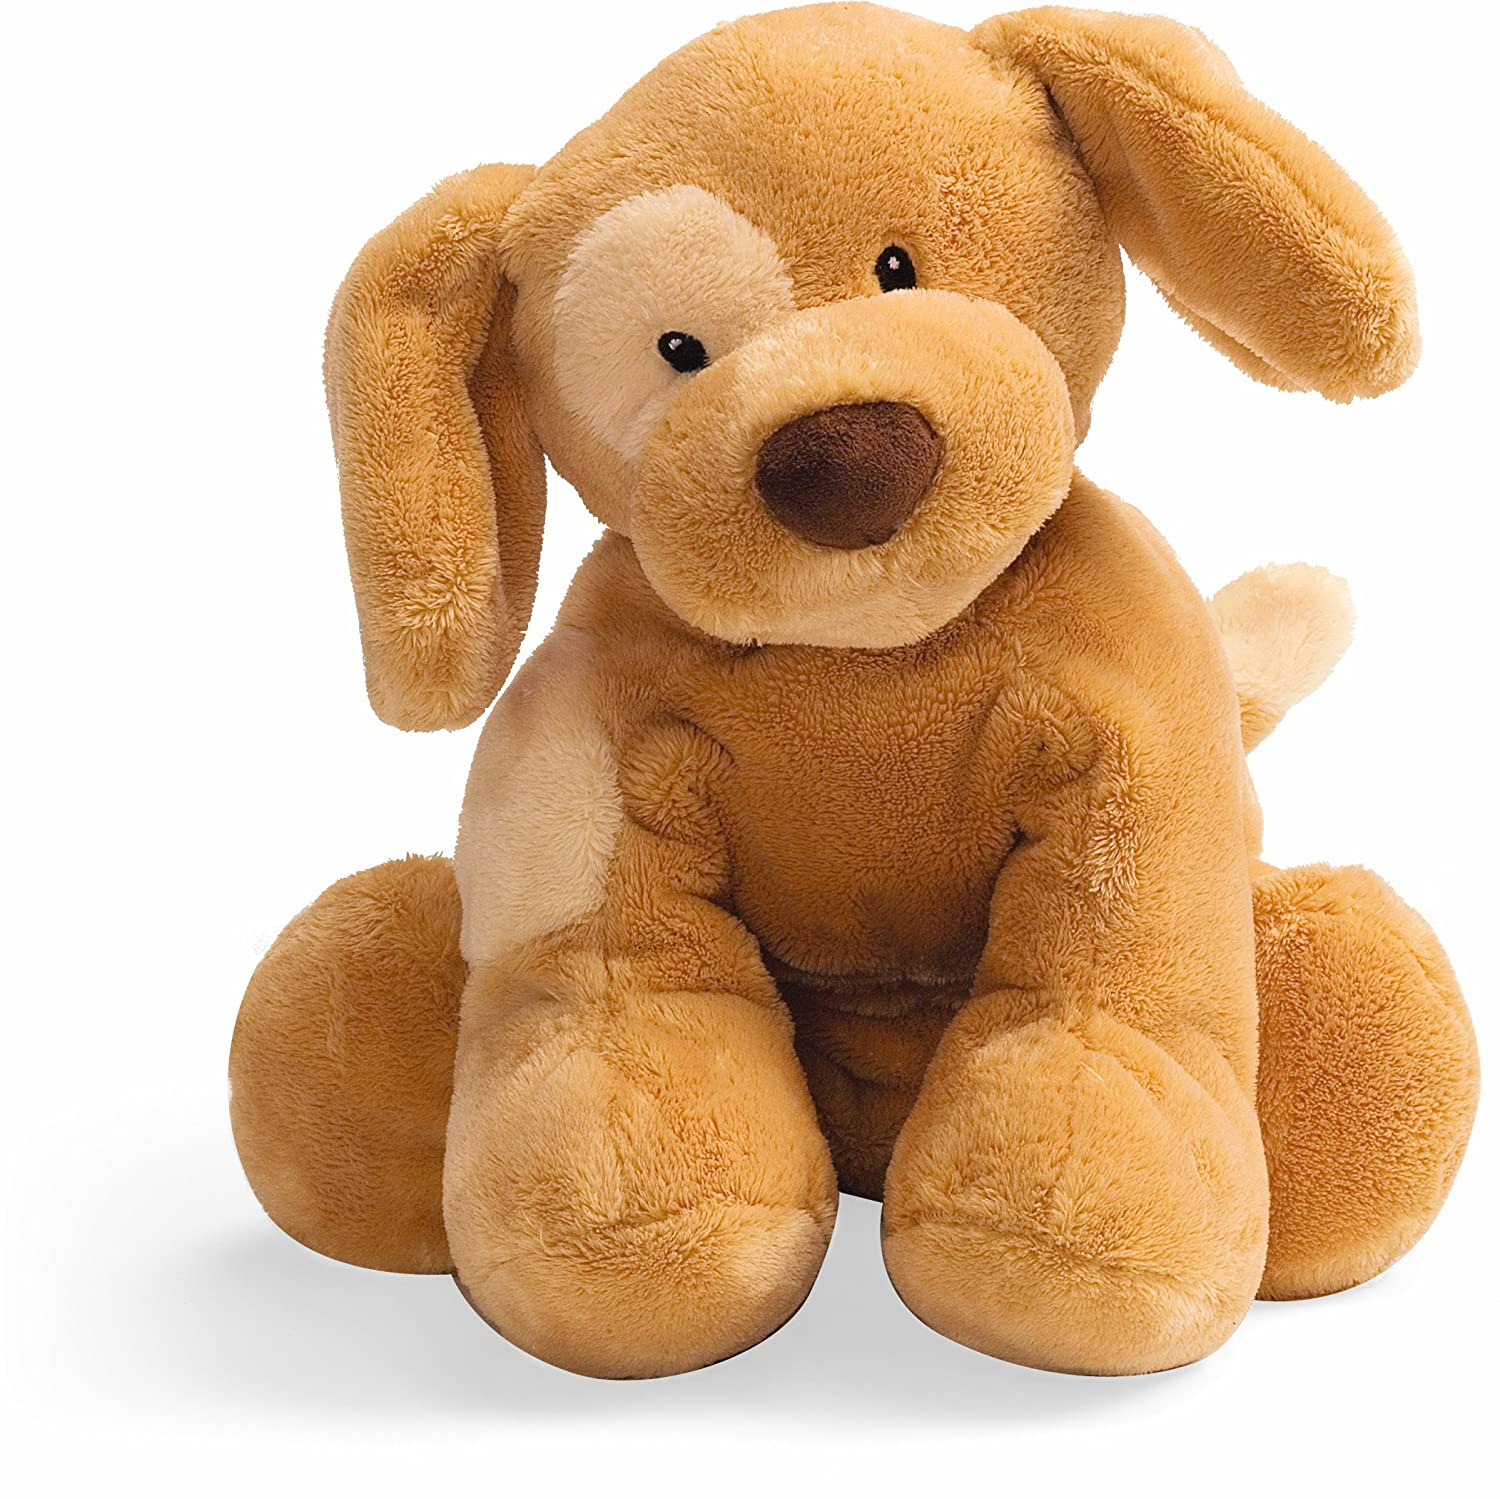 Plush Stuffed Animal Toys : Babies stuffed toys